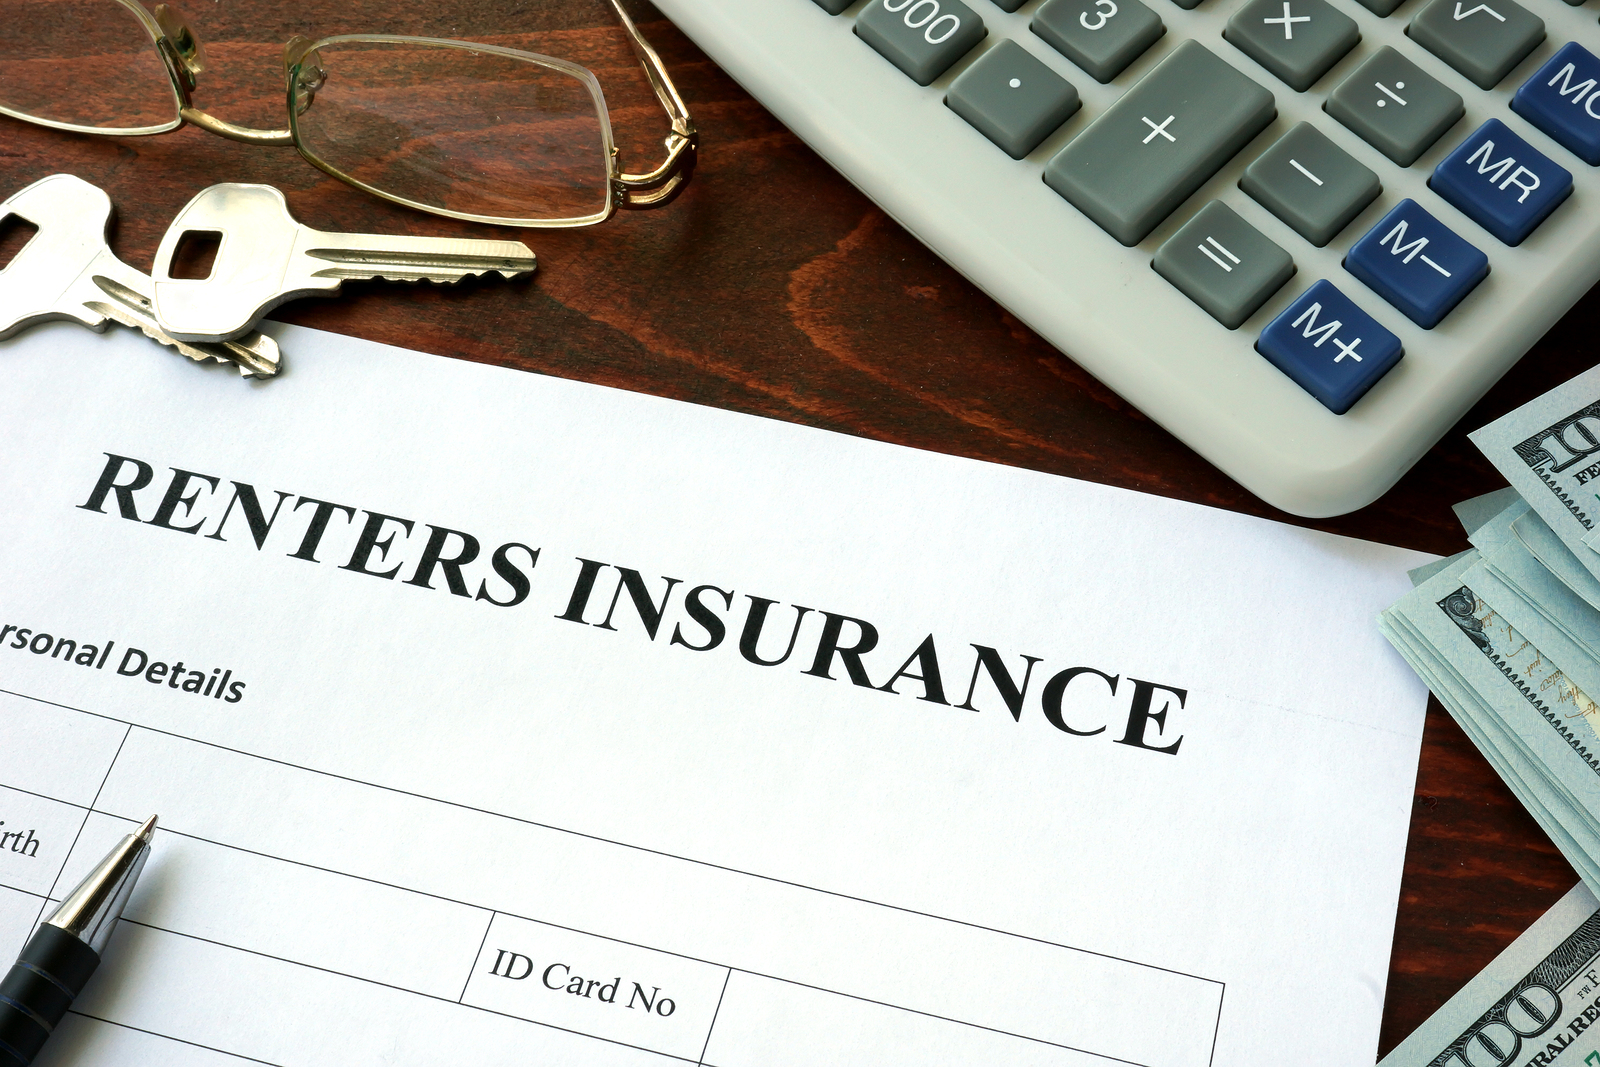 Renters insurance form and dollars on the table.